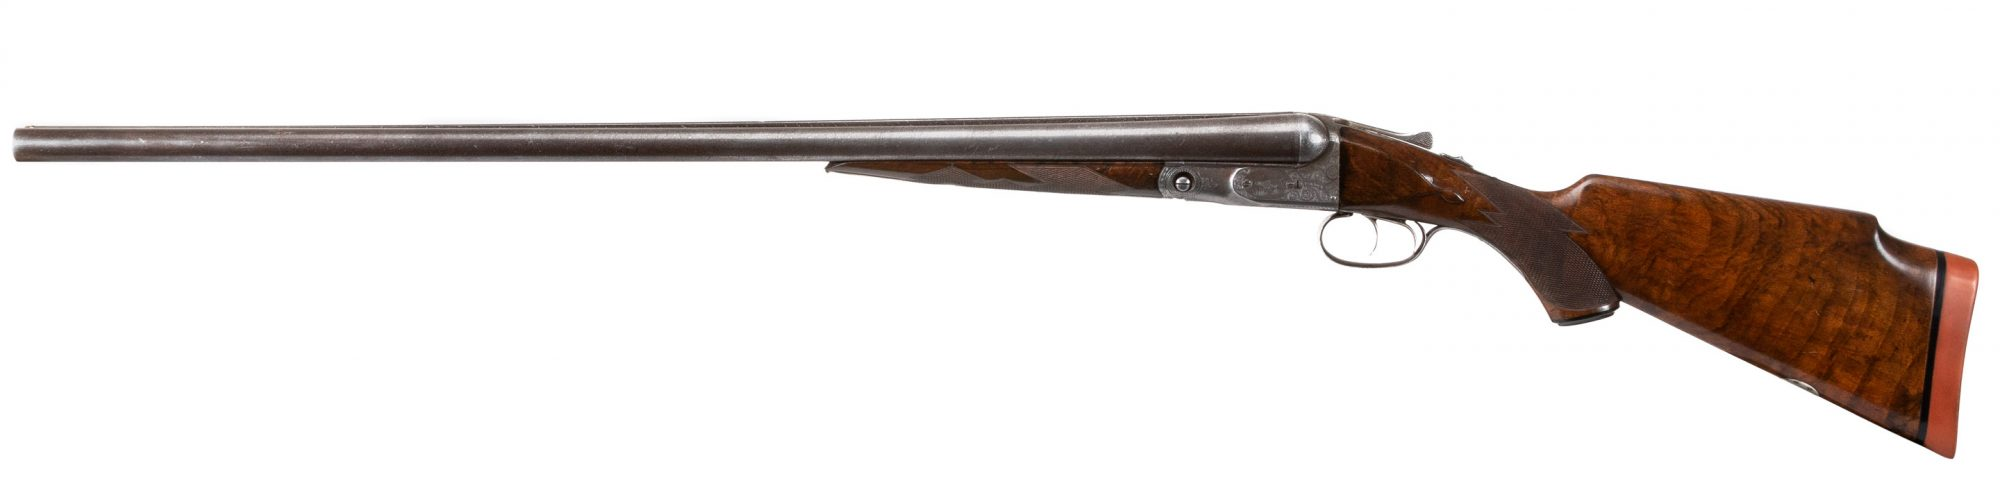 Photo of a pre-owned Parker DH 12 gauge side by side shotgun, being sold as-is by Turnbull Restoration of Bloomfield, New York